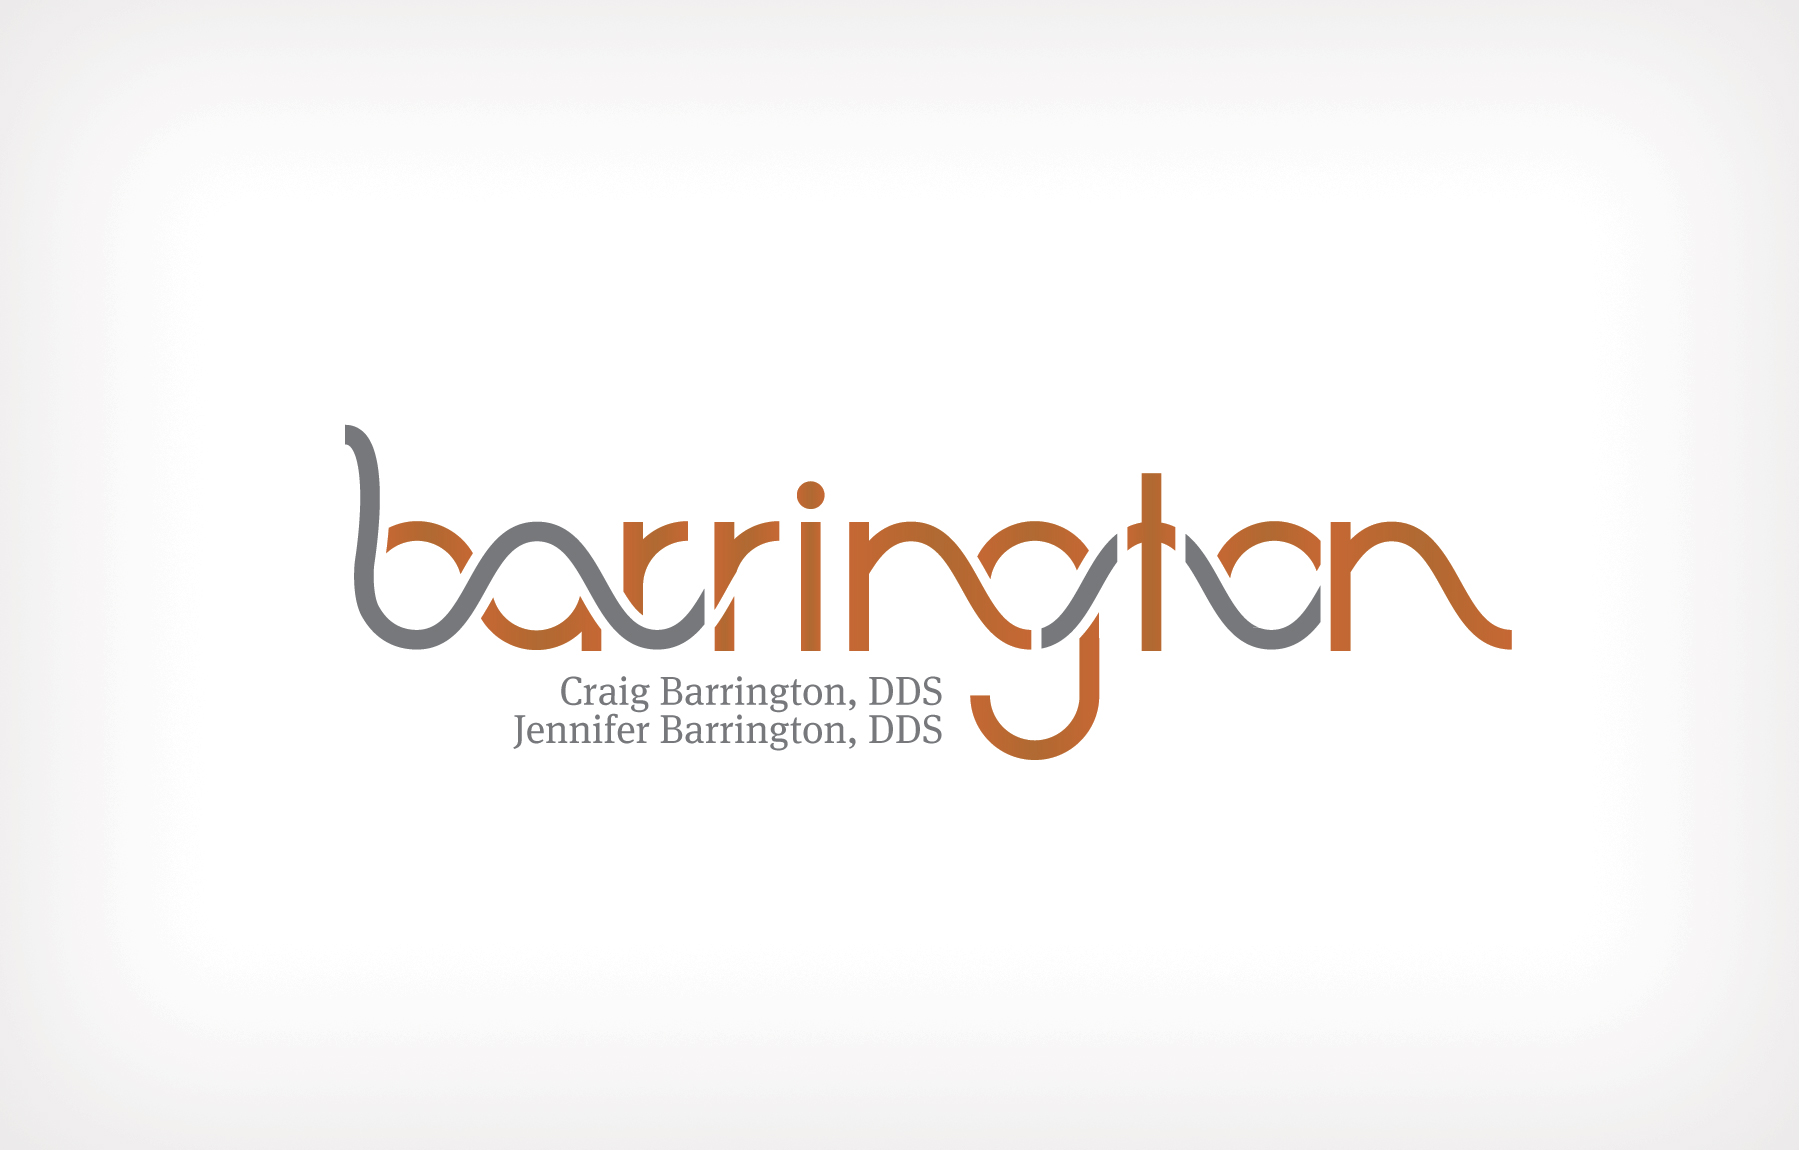 Identity for Drs. Barrington and Barrington - Modern Clean and Innoovative Design